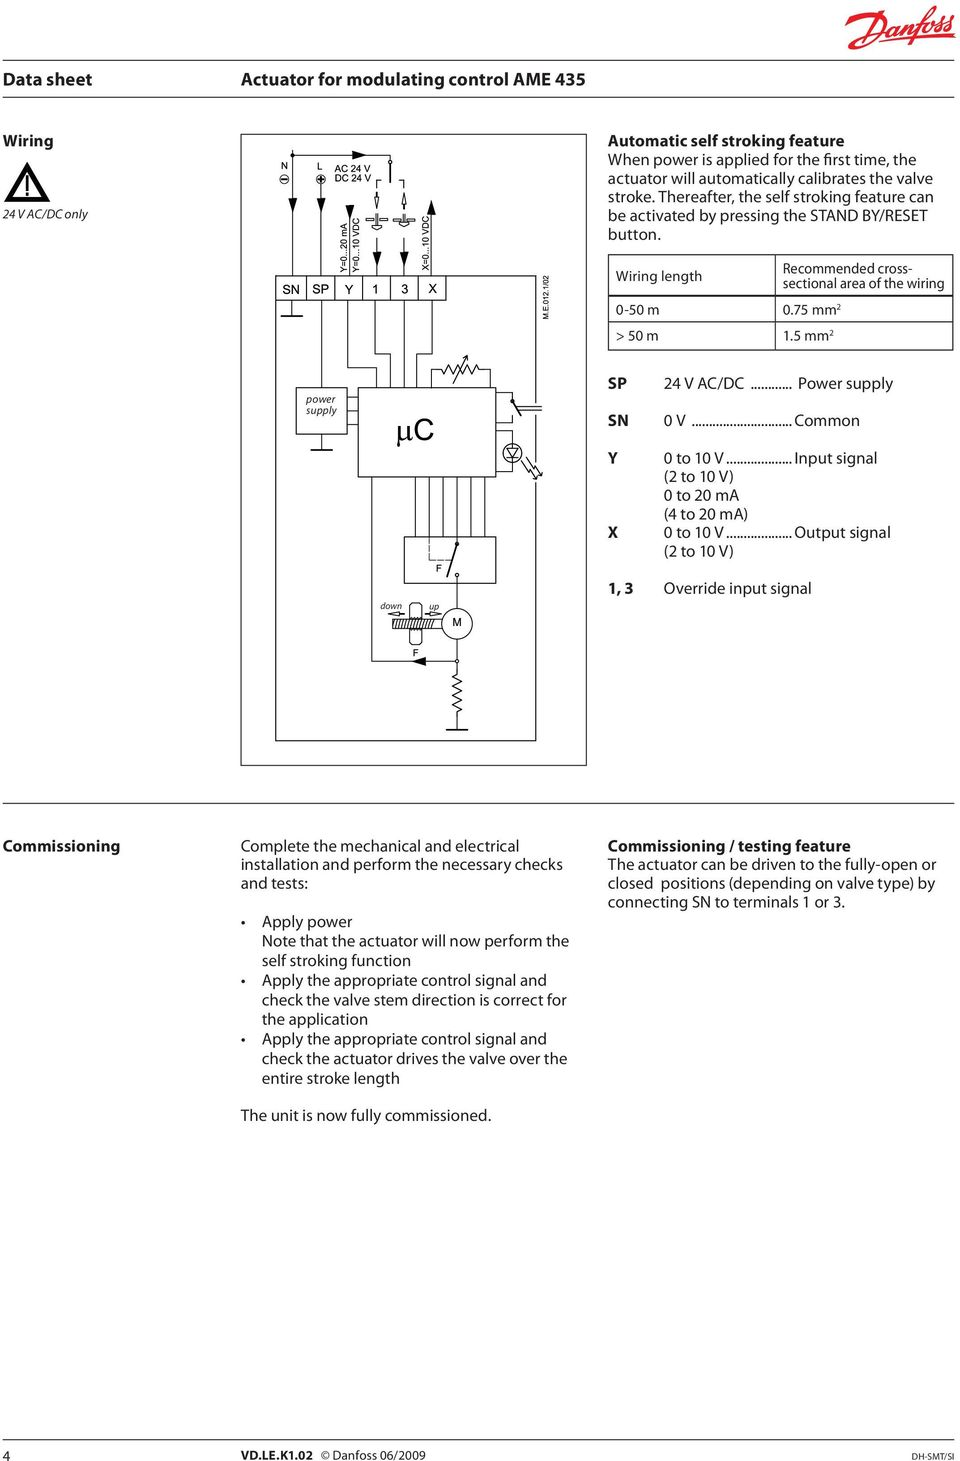 Actuator For Modulating Control Ame Pdf Wiring Diagram 5 Mm 2 Recommended Crosssectional Area Of The Power Supply Sp Sn Y X 24 V Manual Override Turn